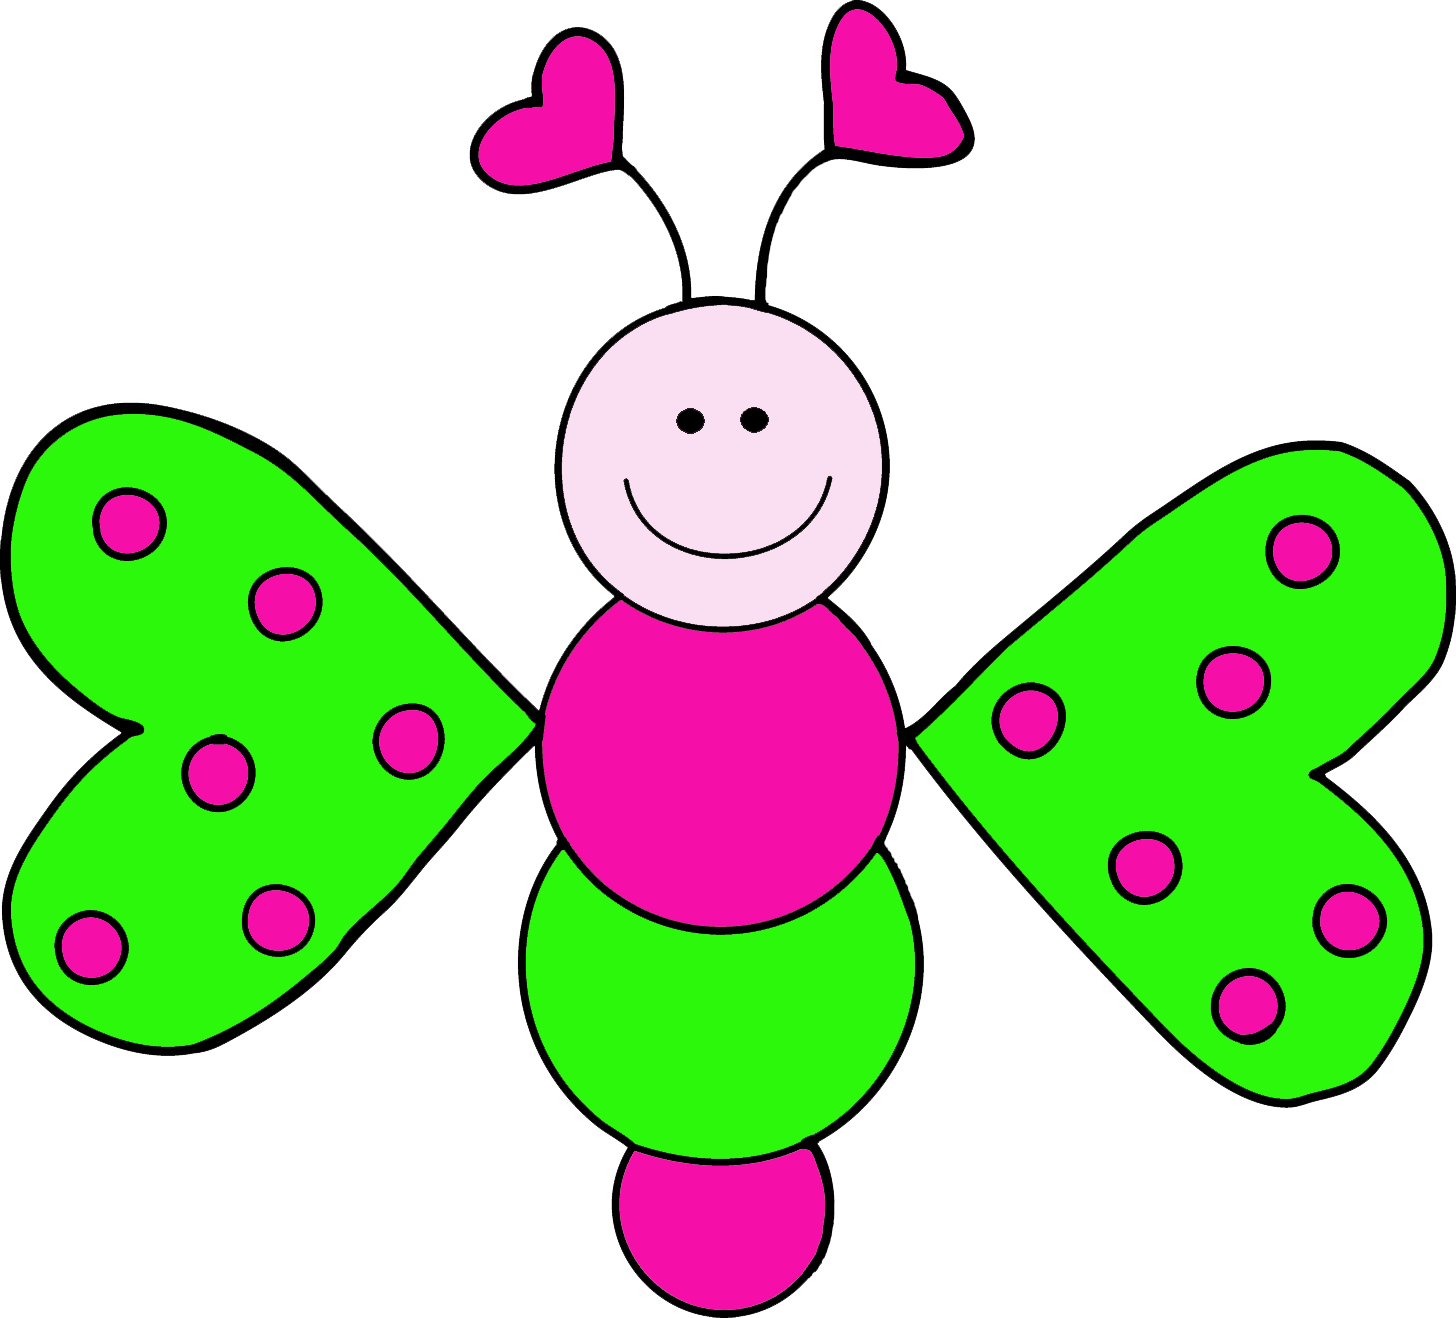 Png clip art download. Cute butterfly clipart panda